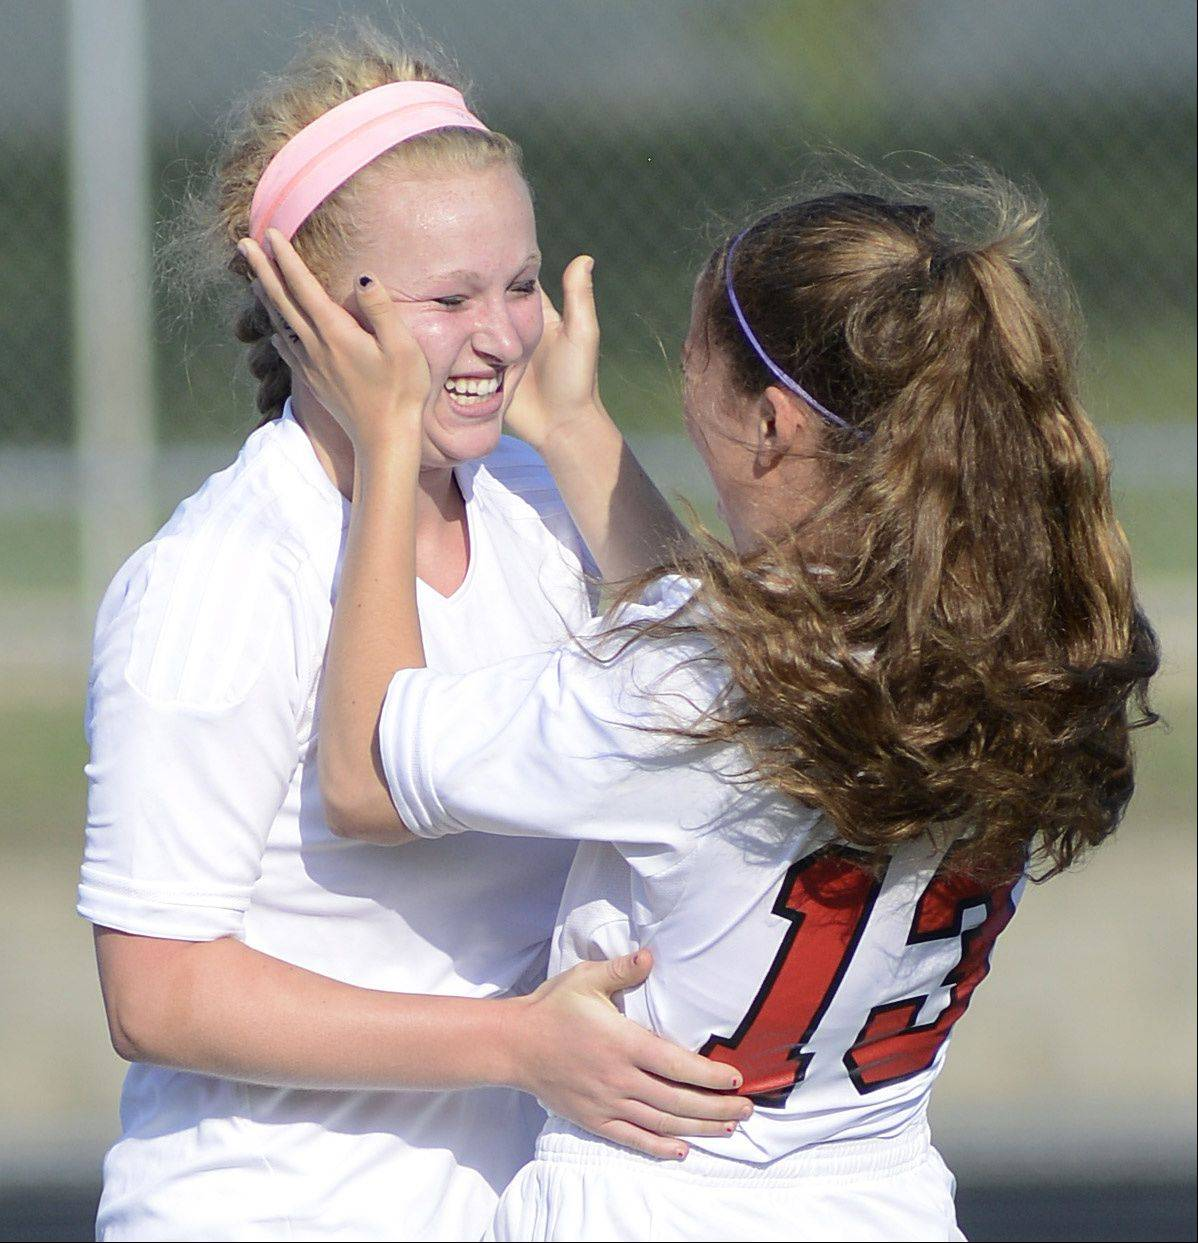 Barrington's Kelsey Muniz congratulates Molly Pfeiffer (10) after Pfeiffer scores a goal minutes into the first half of the Class 3A supersectional in Barrington on Wednesday.